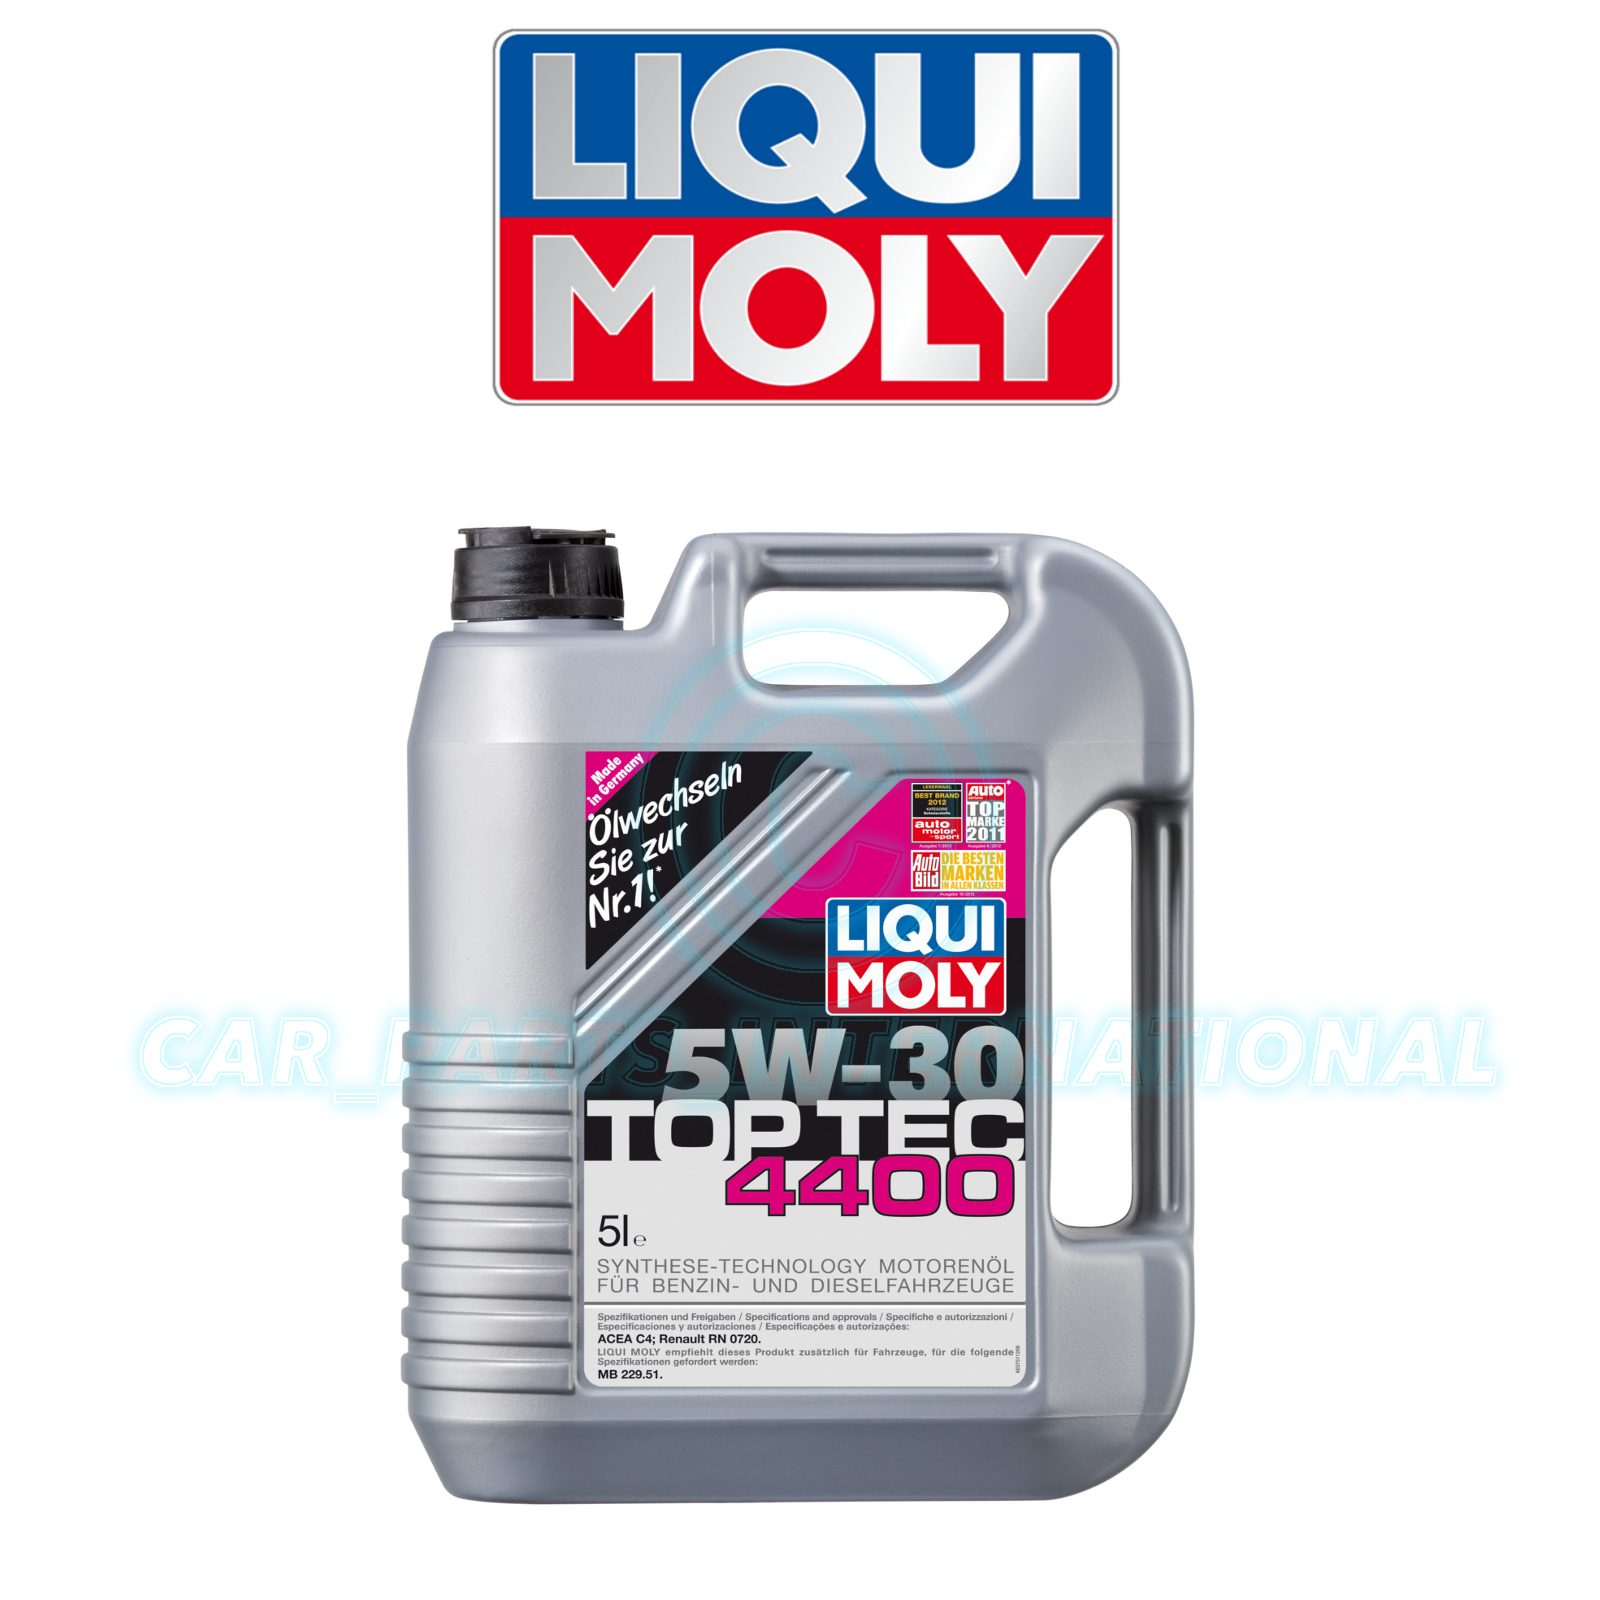 liqui moly top tec 4400 5w30 synthetic oil 5l ebay. Black Bedroom Furniture Sets. Home Design Ideas